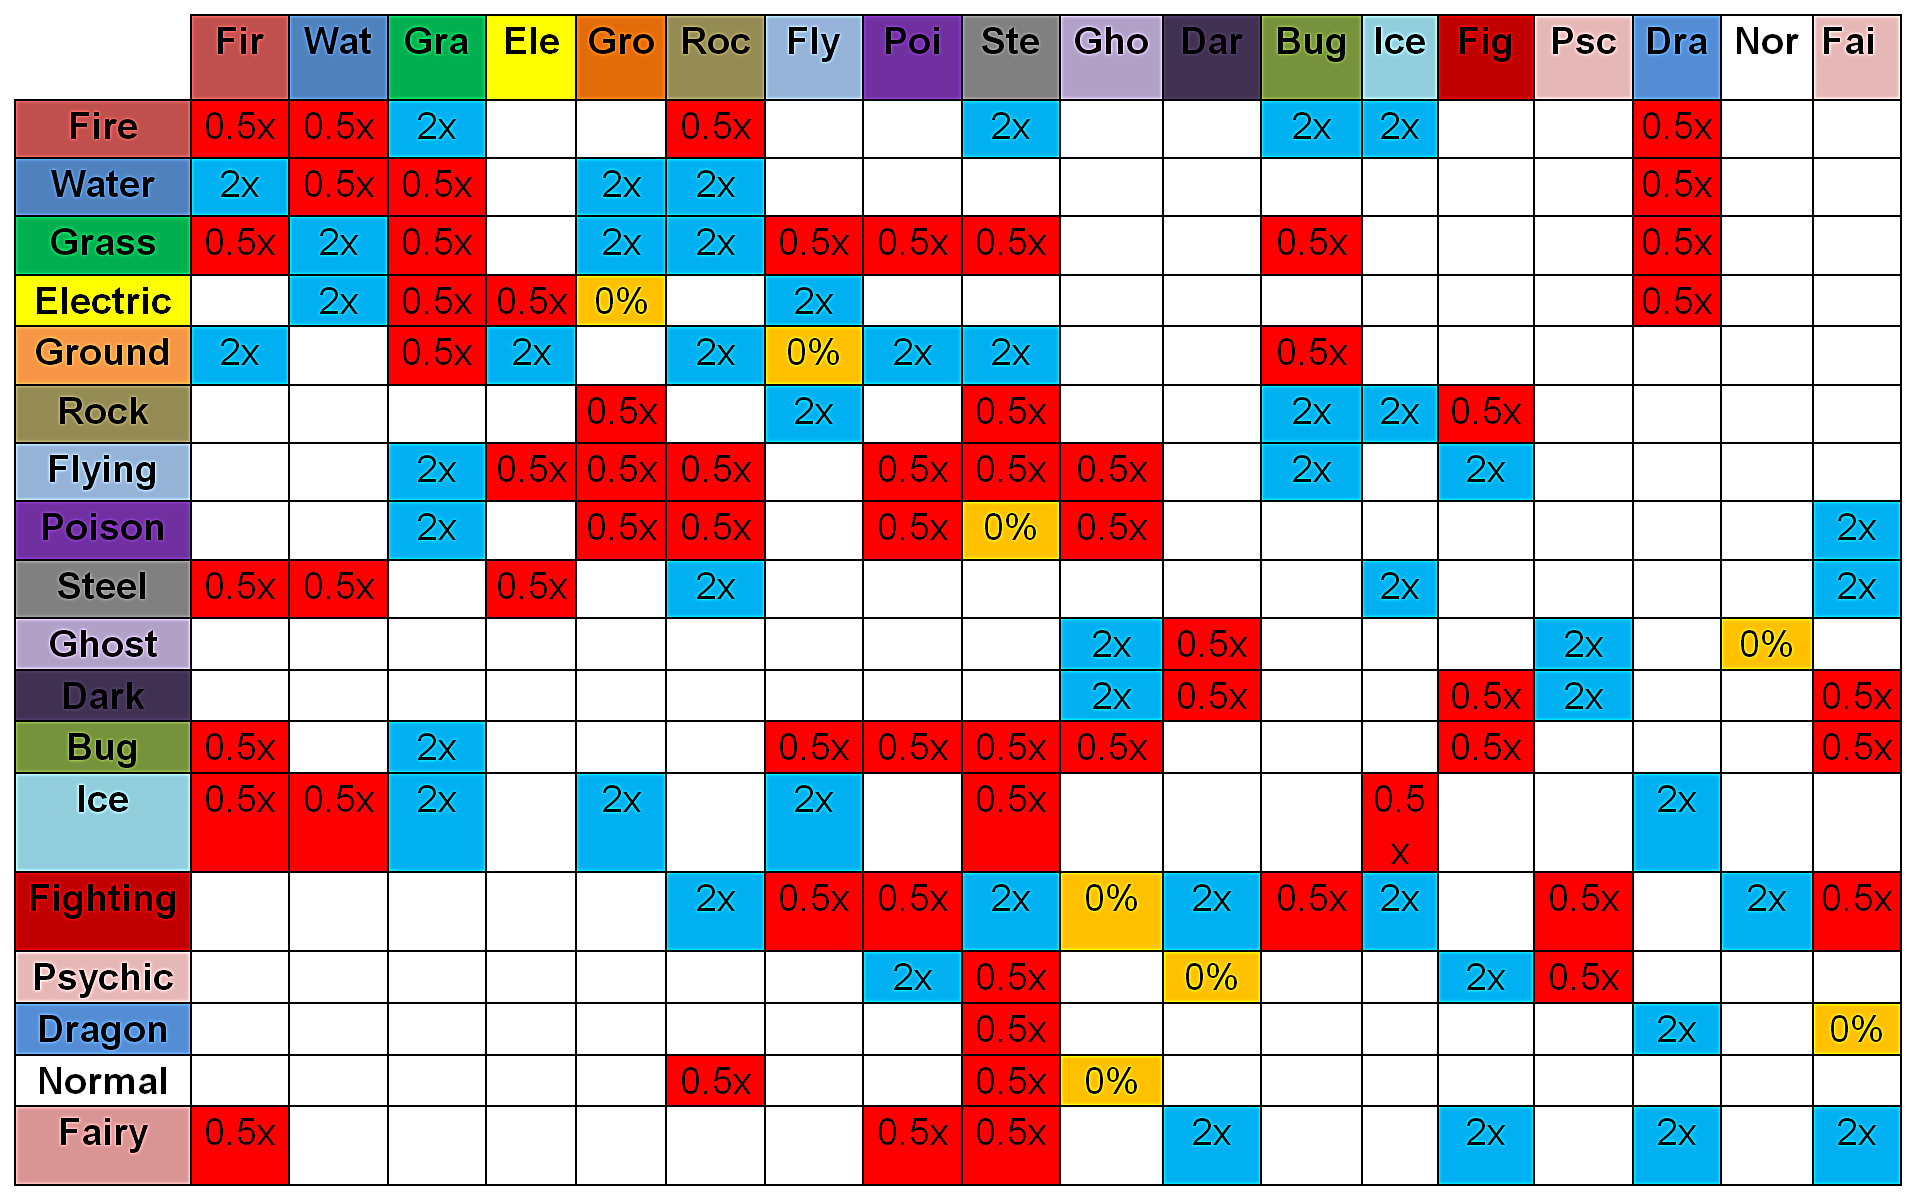 guide to a pokemon type s strengths and weaknesses all blue boxes labelled 2x indicate what is super effective against what all red labelled 0 5x indicate that type is ineffective against